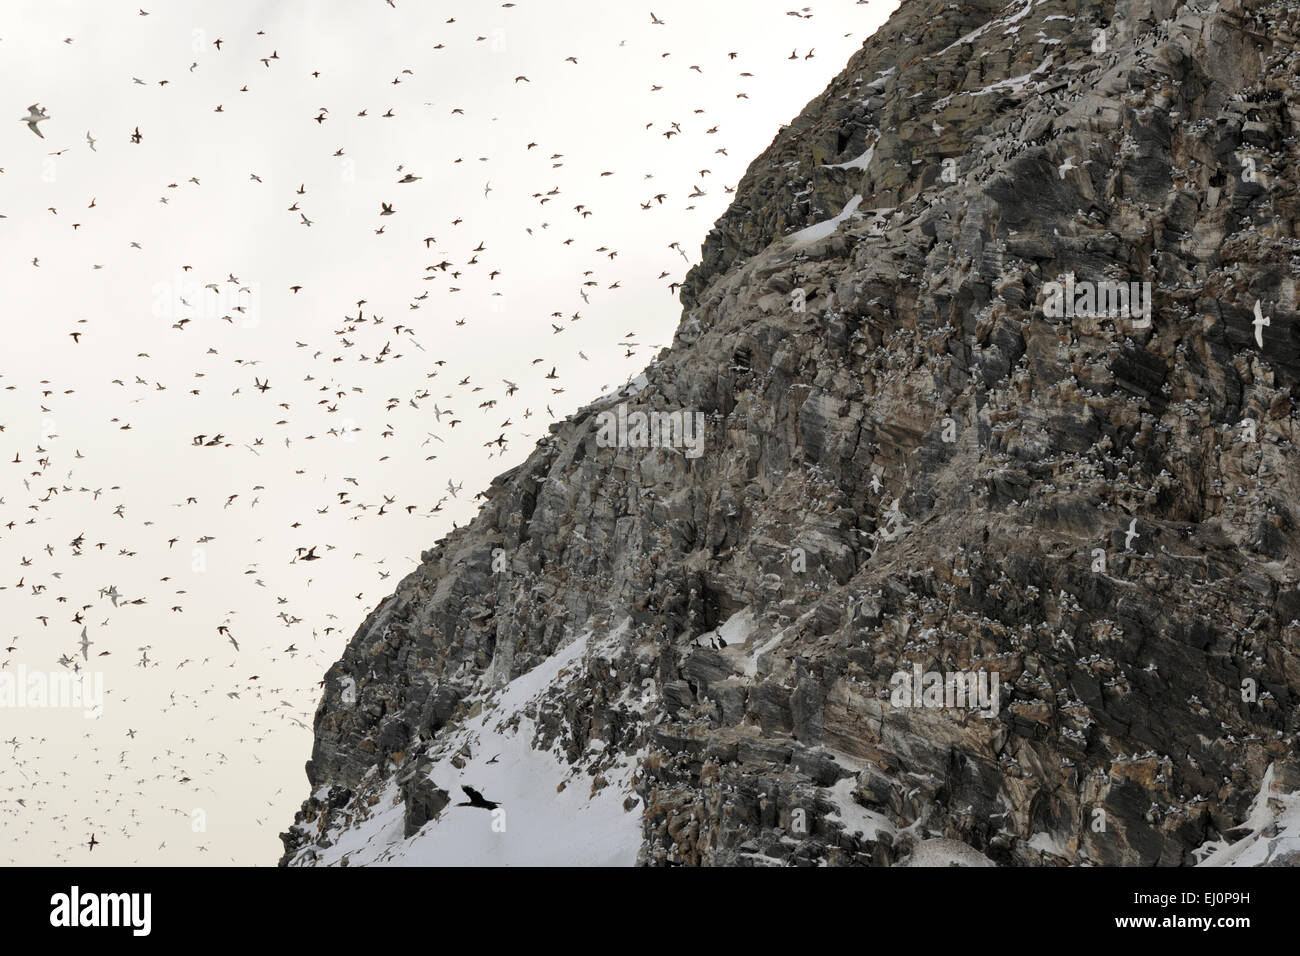 Atlantic Puffins (Fratercula arctica) and Guillemots (Uria aalge)returning in large amounts back to their breeding - Stock Image